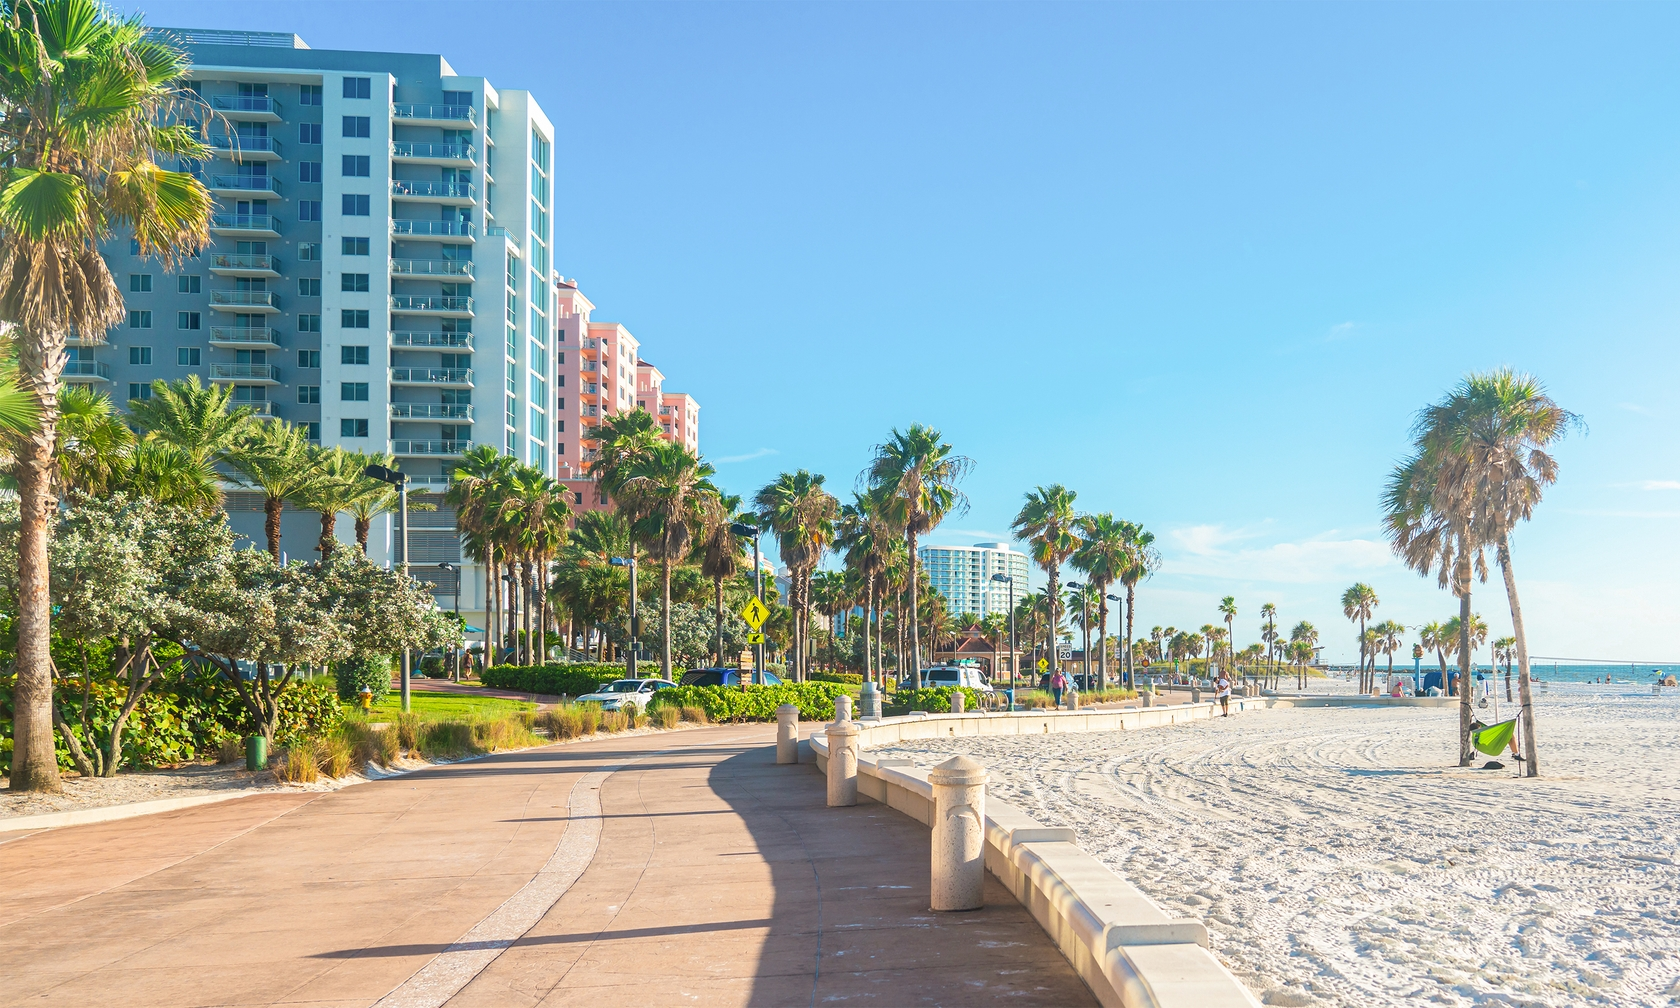 Vacation rental apartments in Clearwater